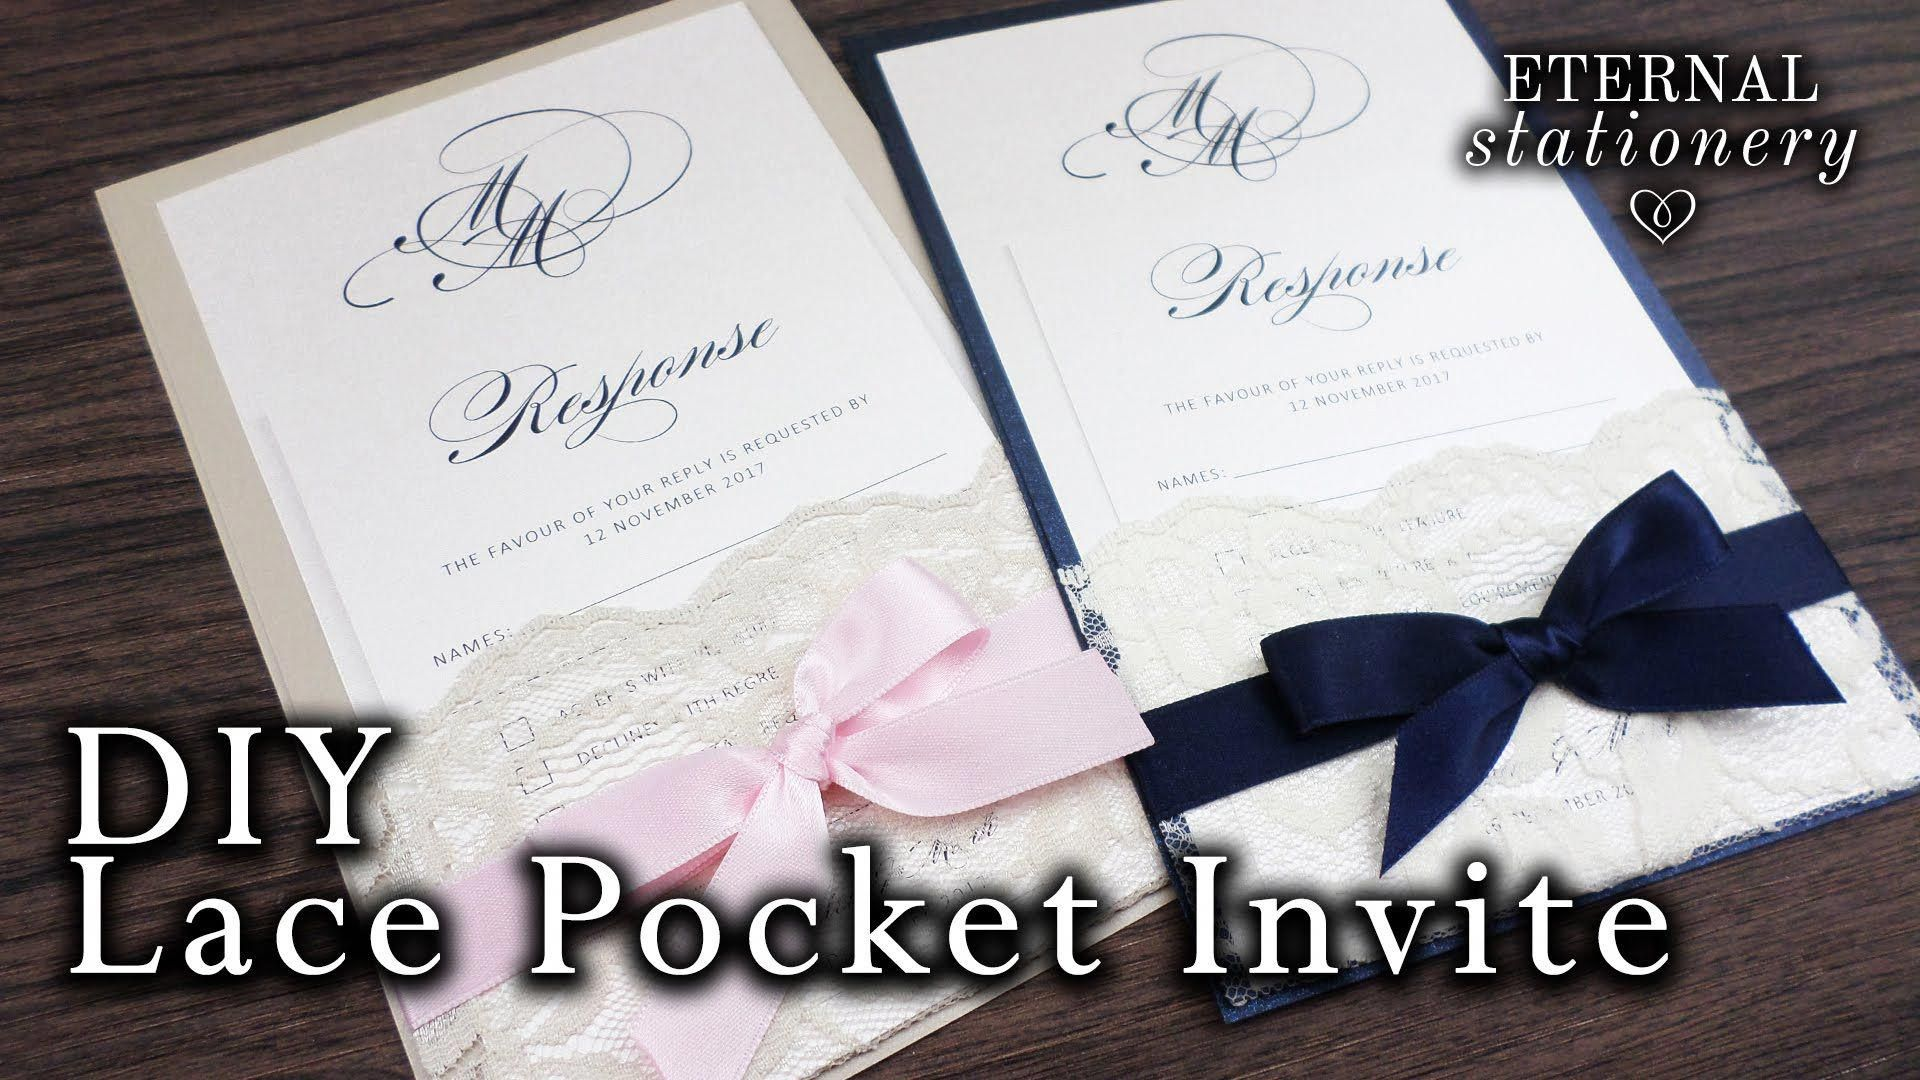 How To Make Your Own Lace Pocket Wedding Invitations Easy Diy Invitation Diy Wedding Stationery Make Your Own Wedding Invitations Pocket Wedding Invitations